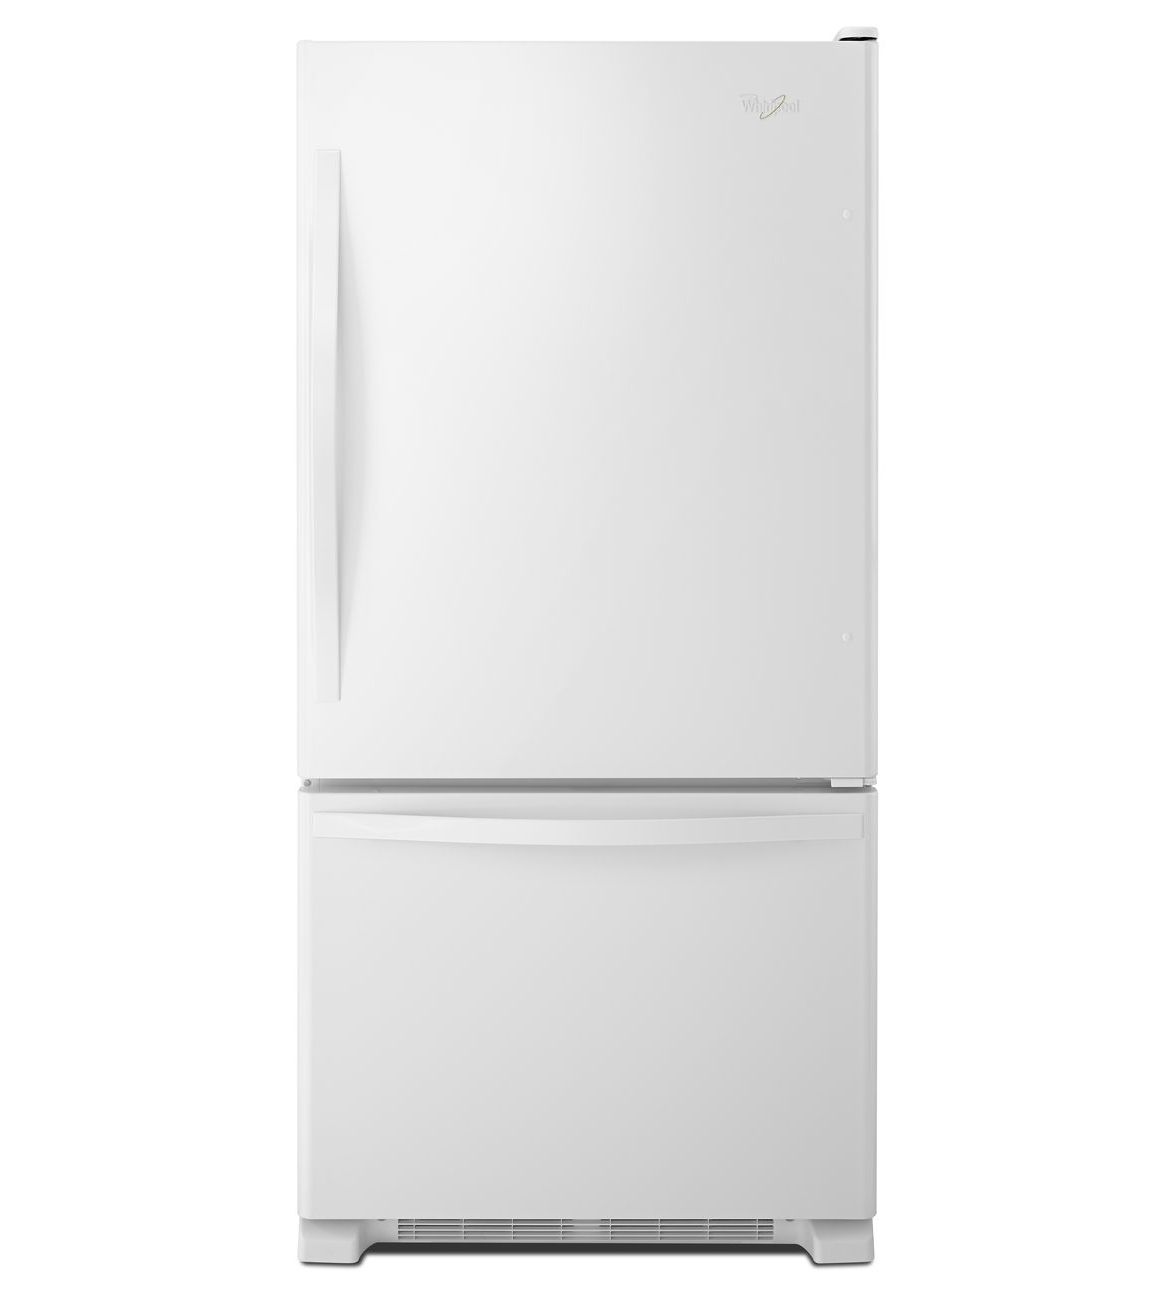 30 Inches Wide Bottom Freezer Refrigerator With Spillguard